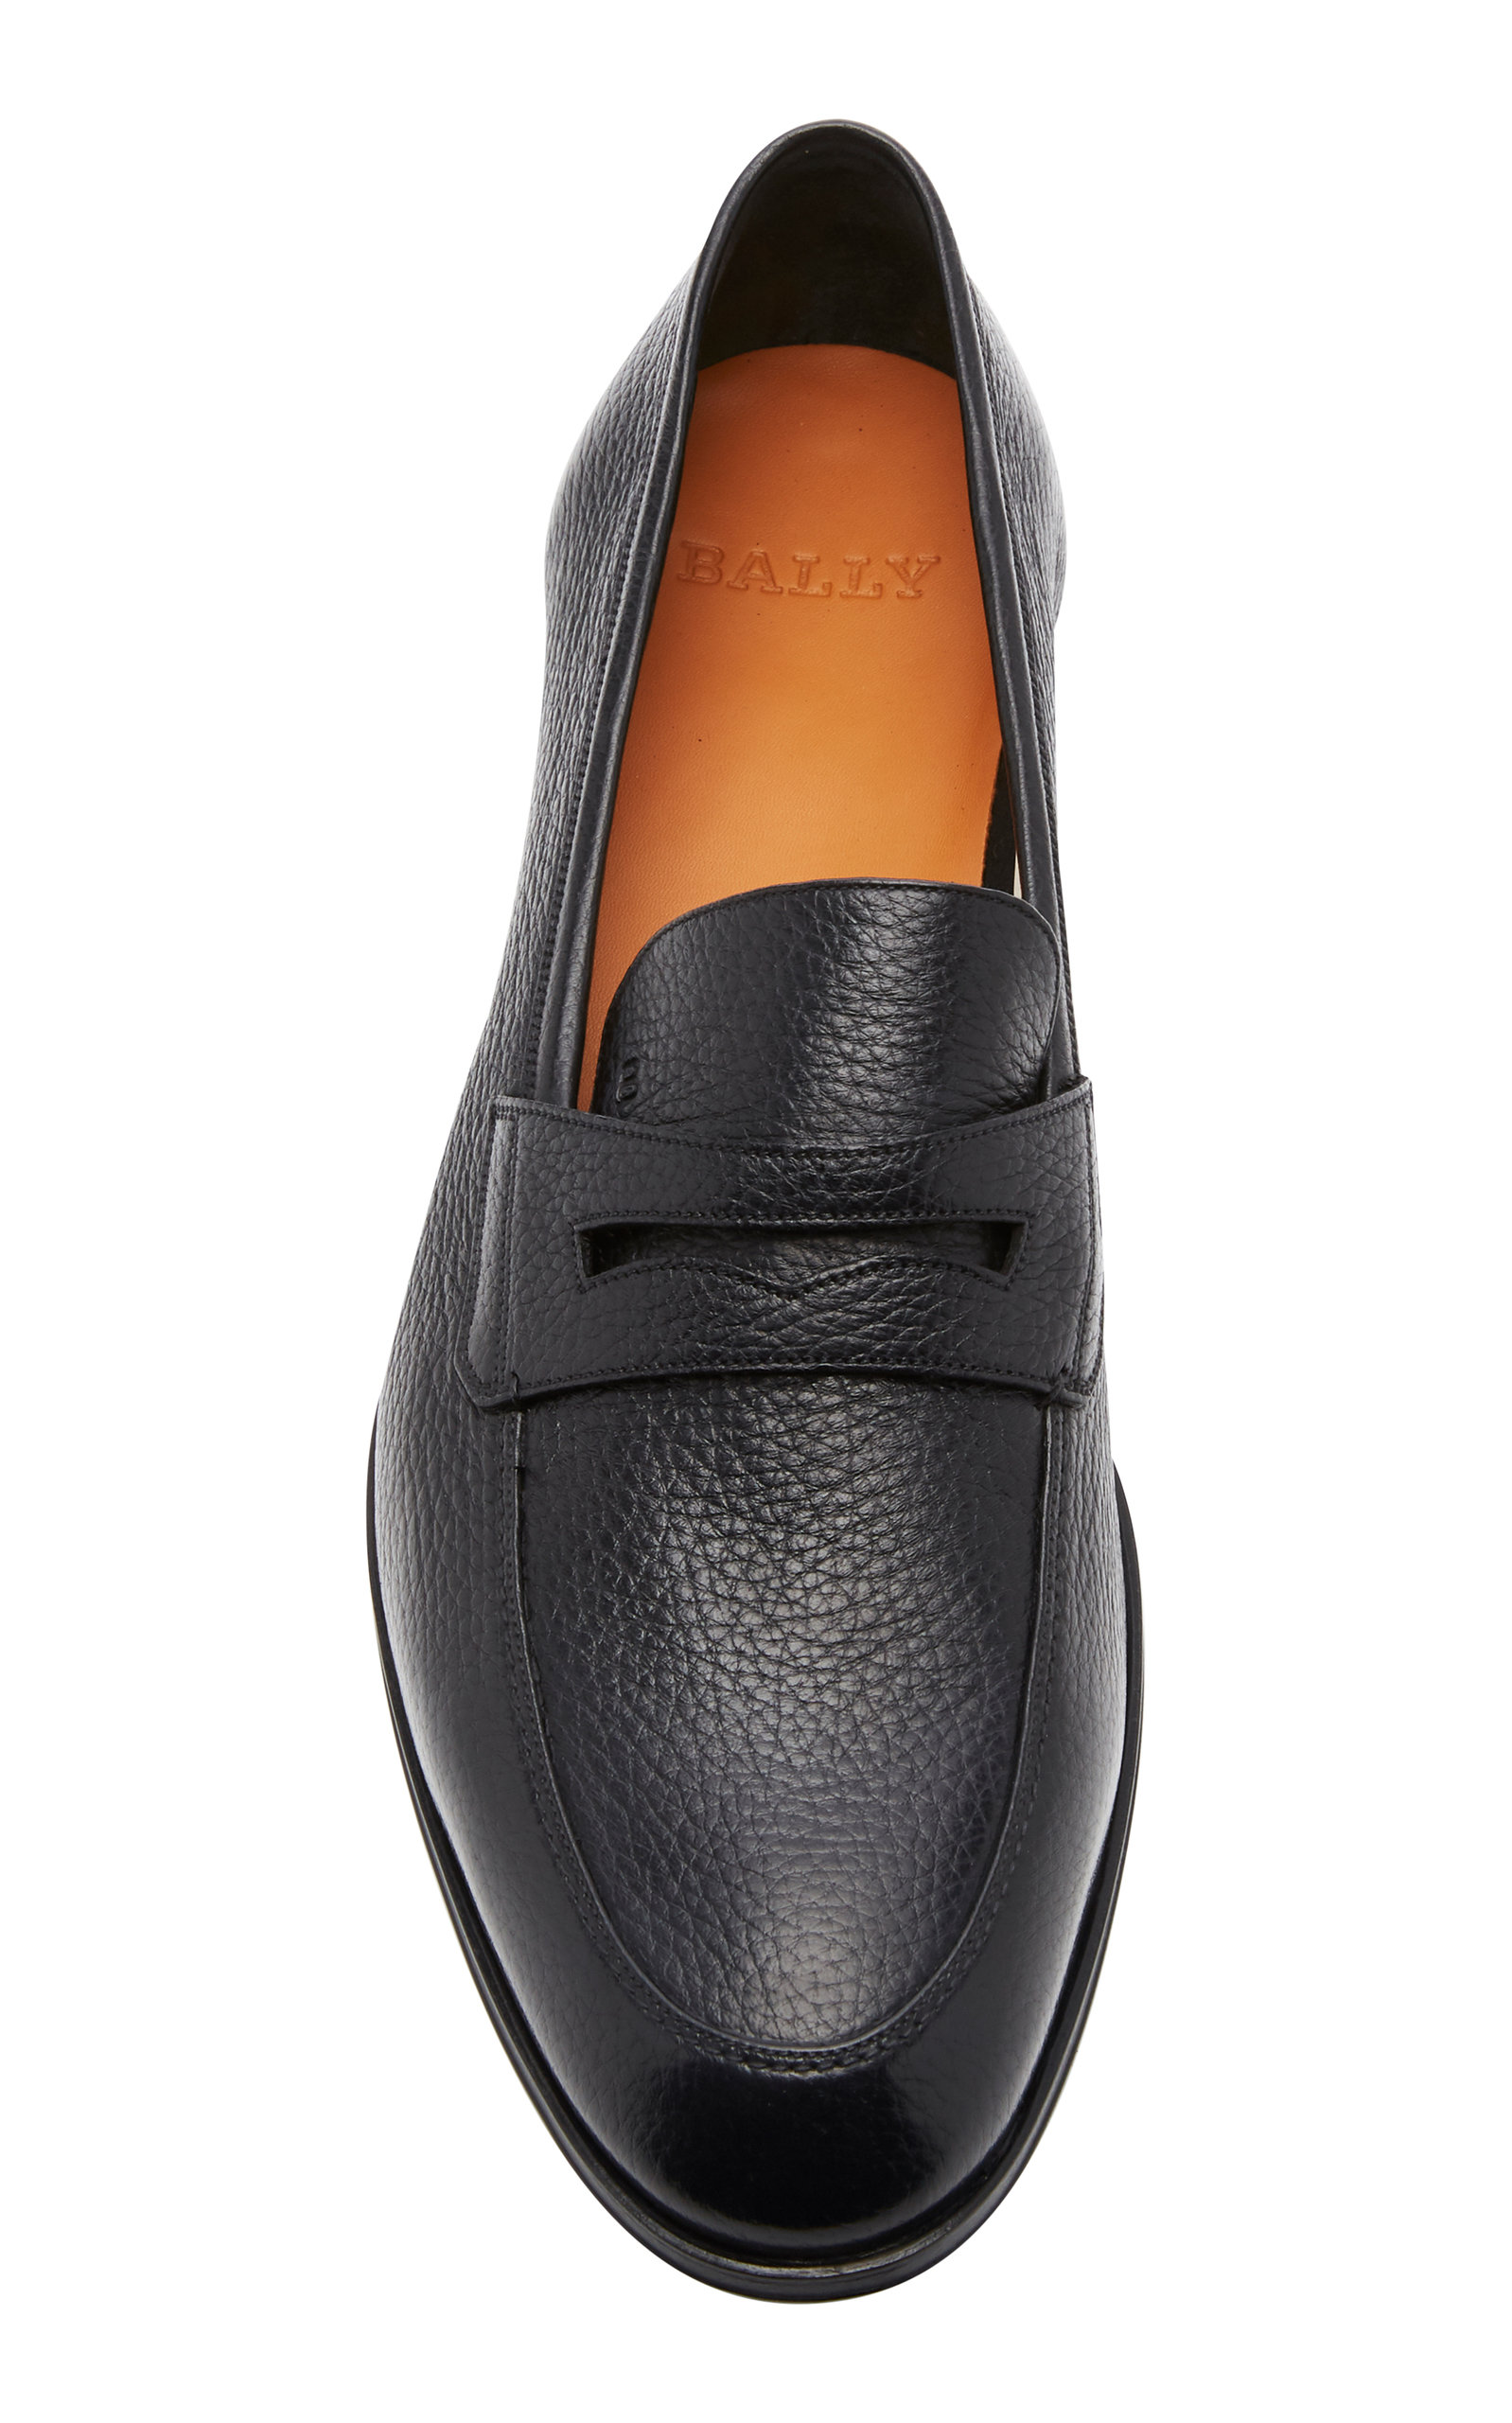 13f102ae755 BallyWebb Leather Penny Loafers. CLOSE. Loading. Loading. Loading